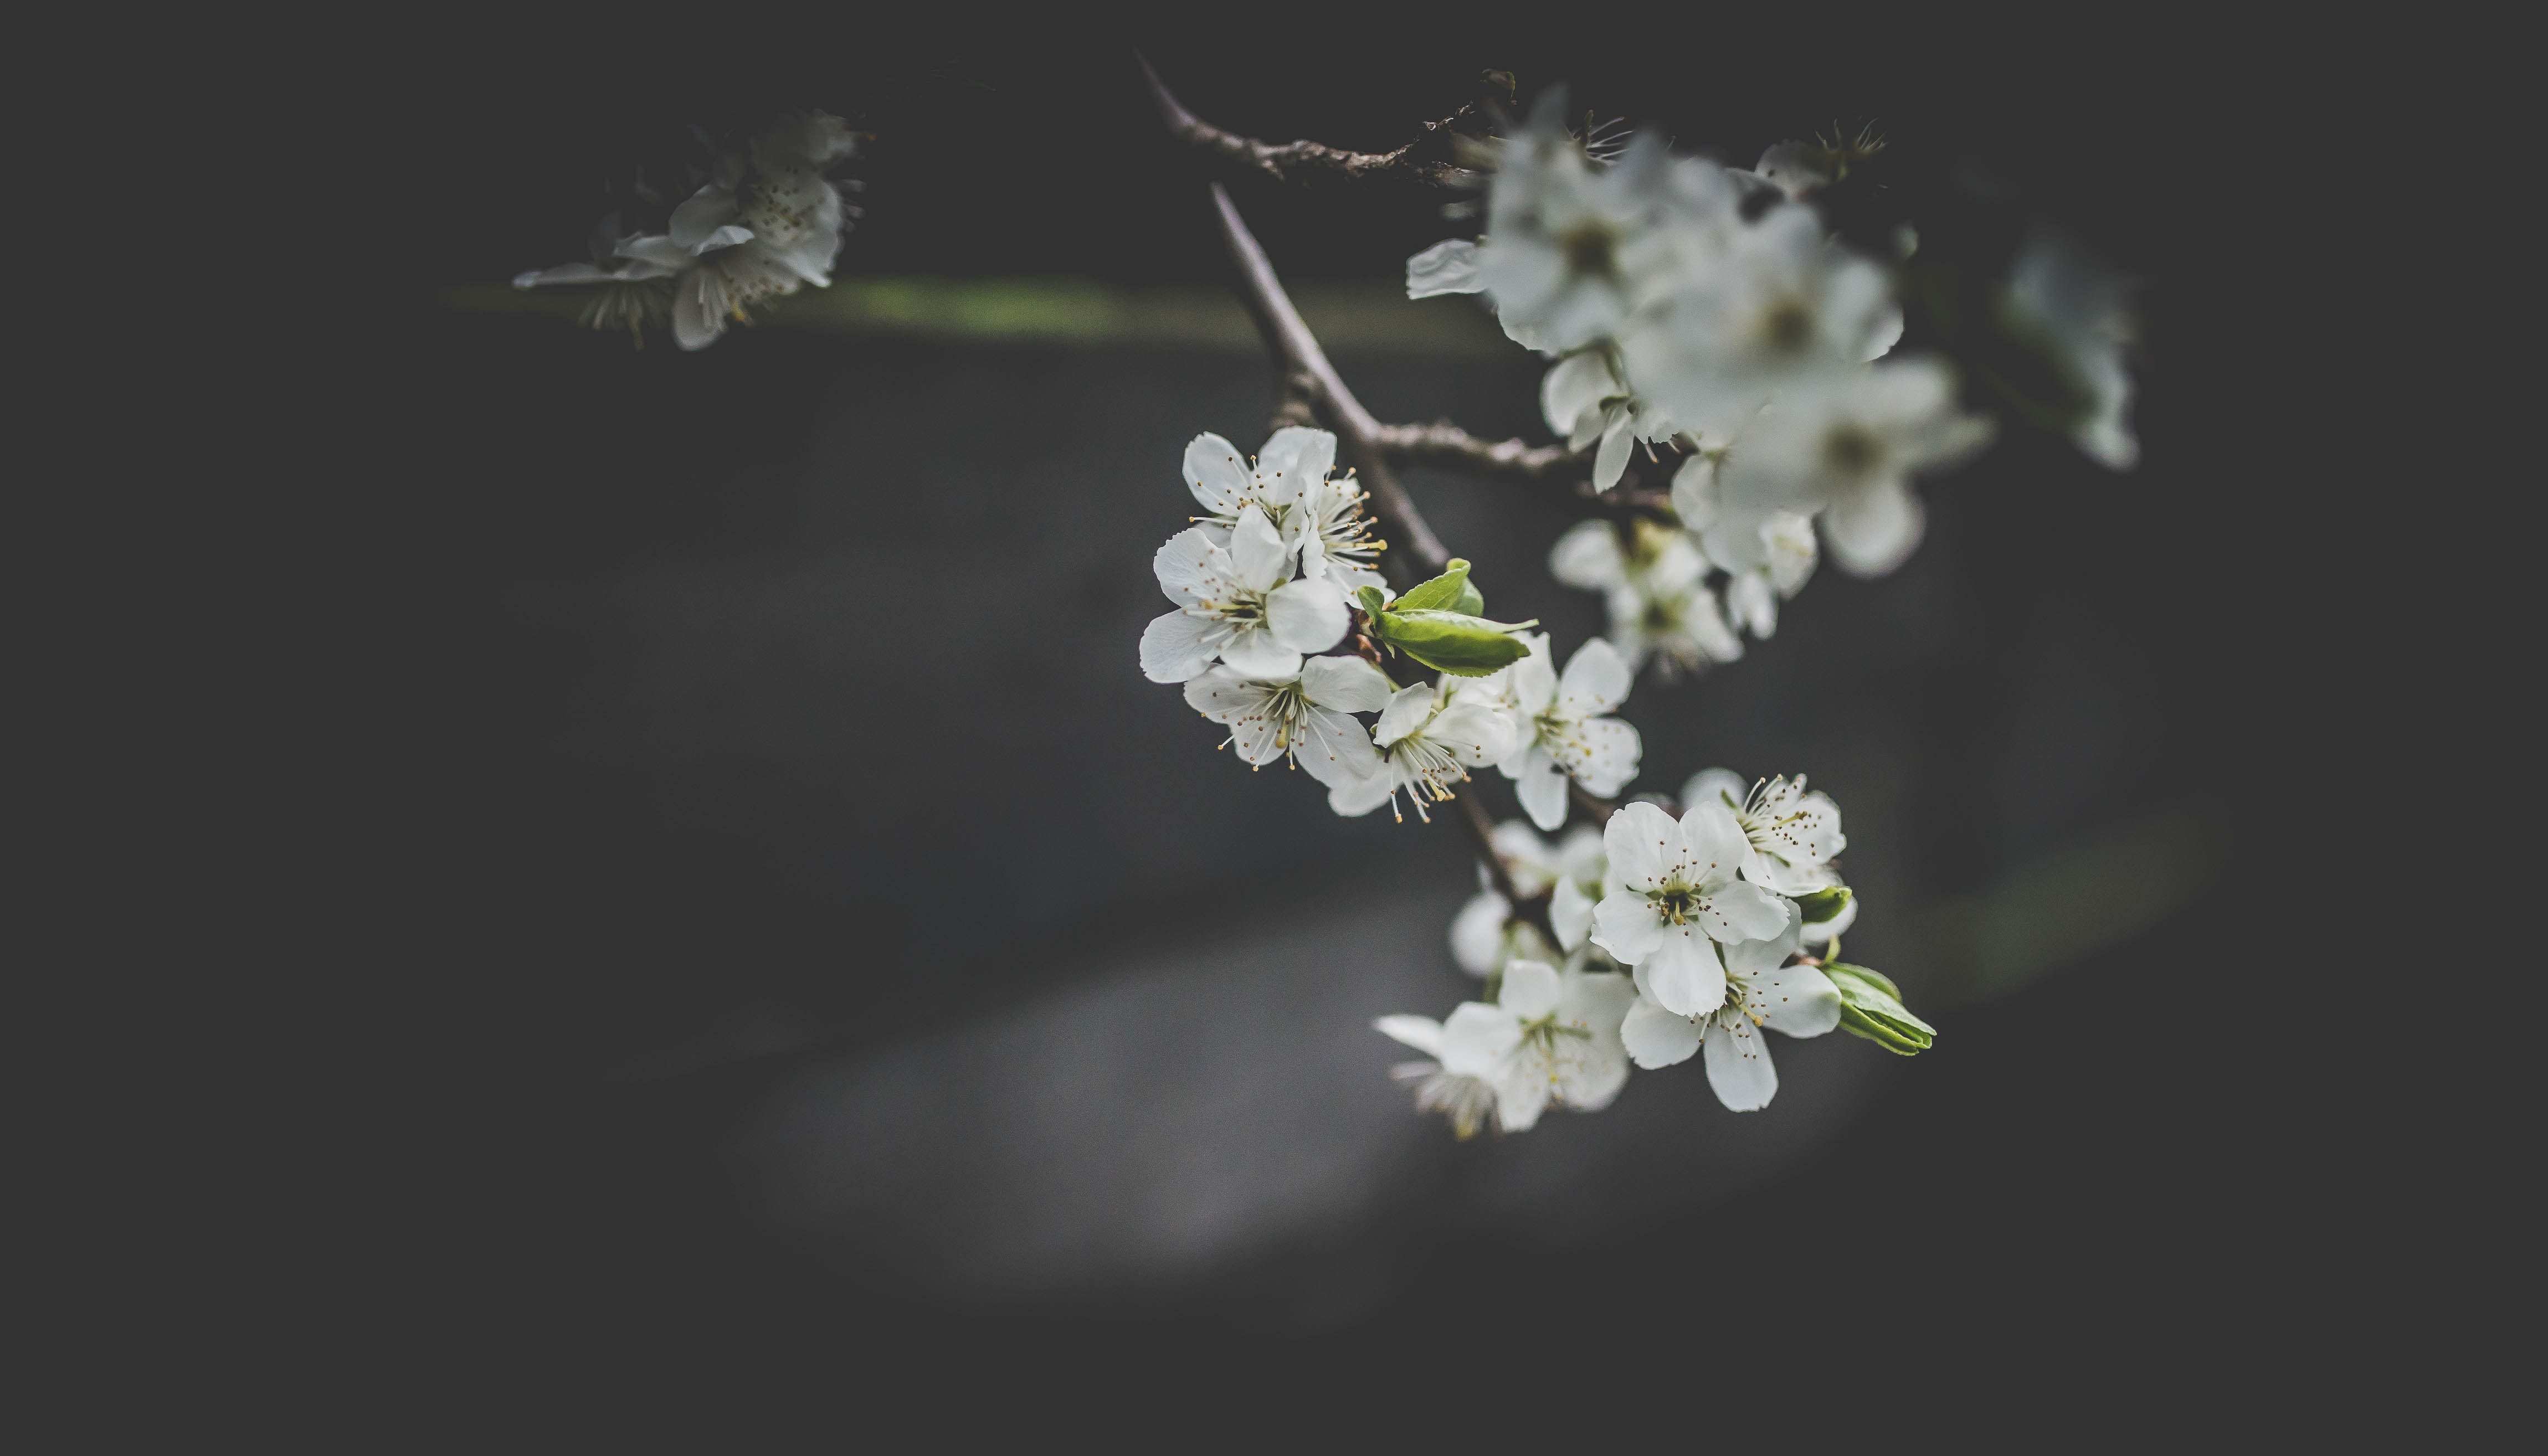 Branch with white blossom flowers pointing towards floor against dark background